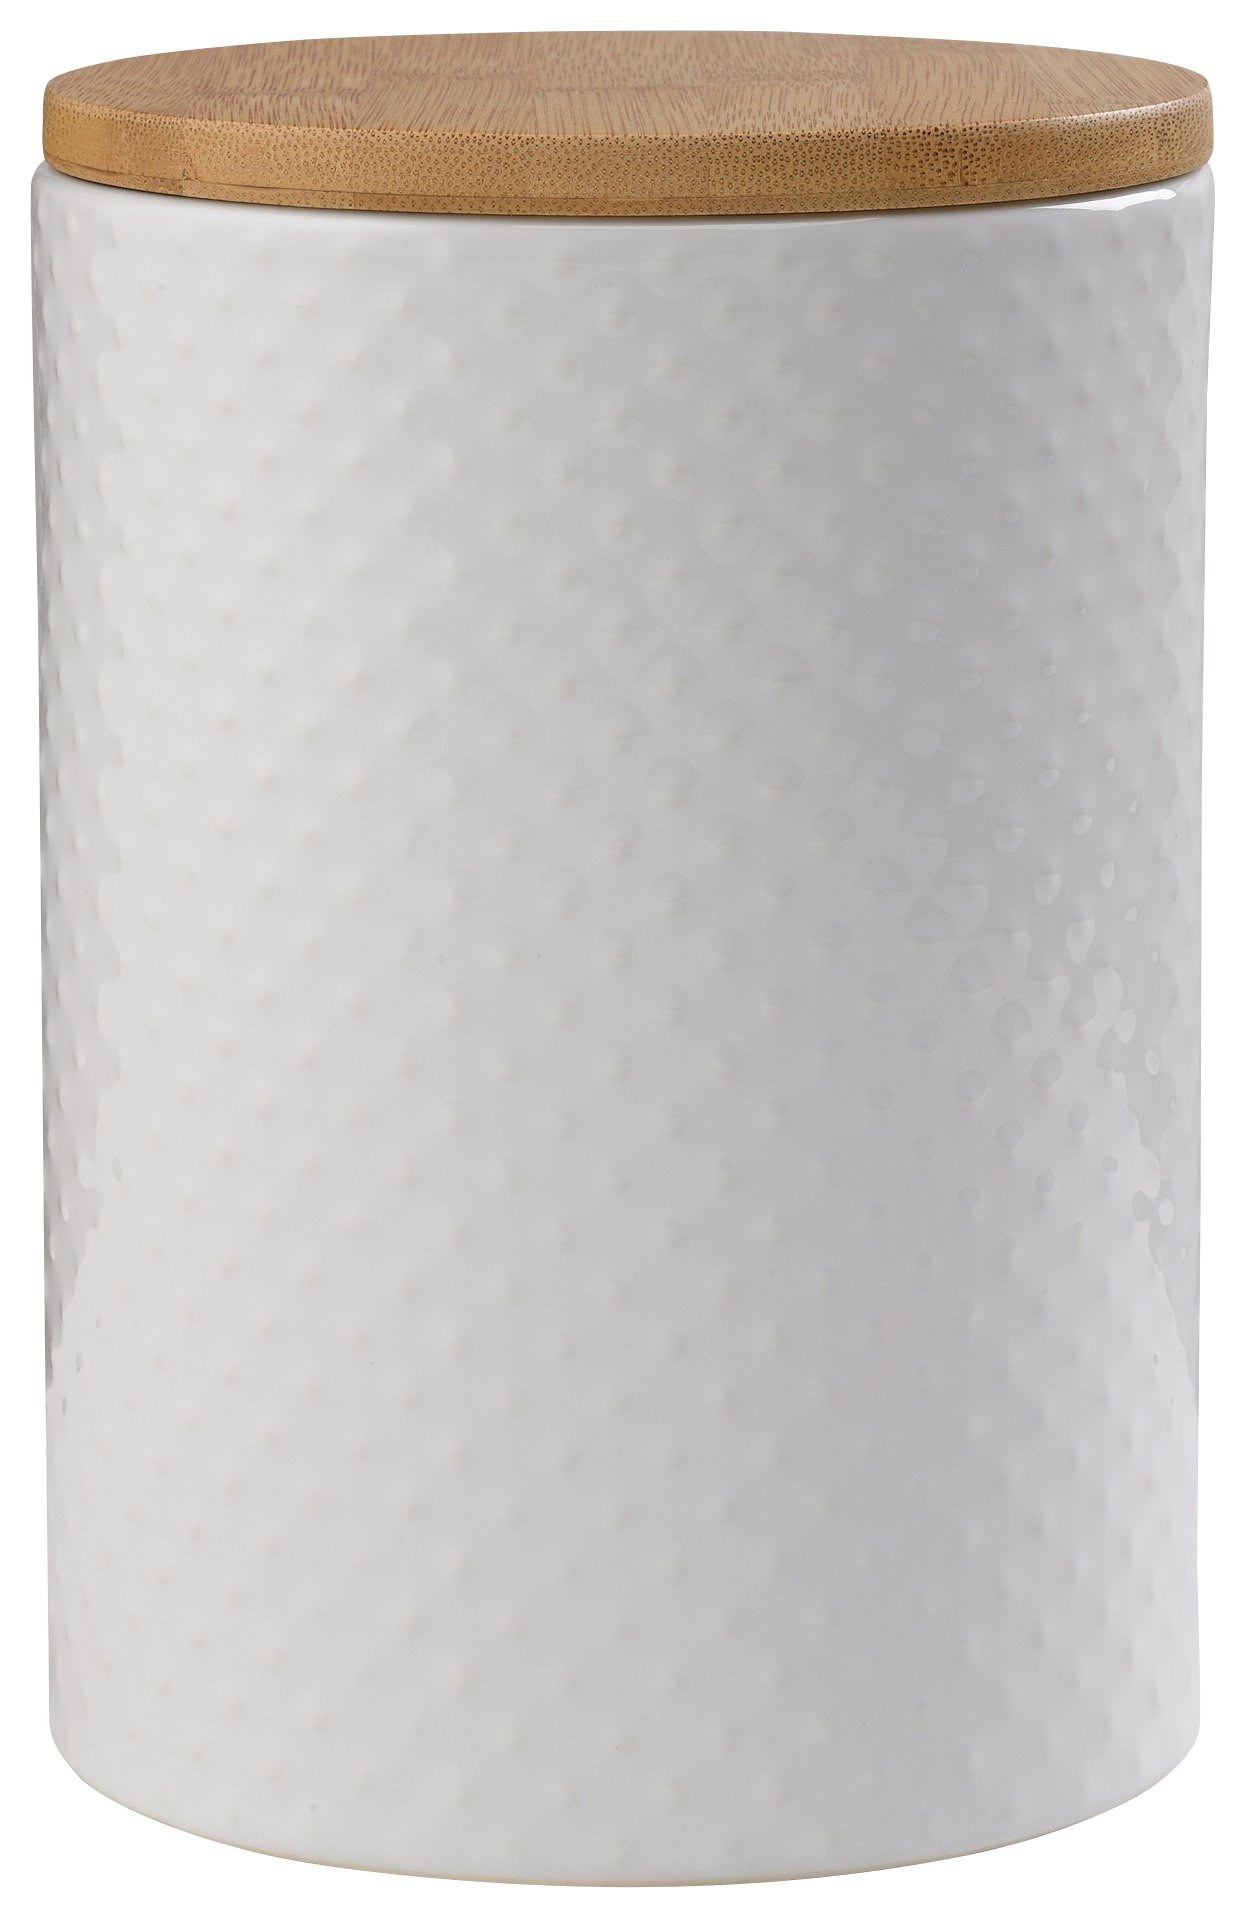 Heart of House Veda Textured Biscuit Jar - White.